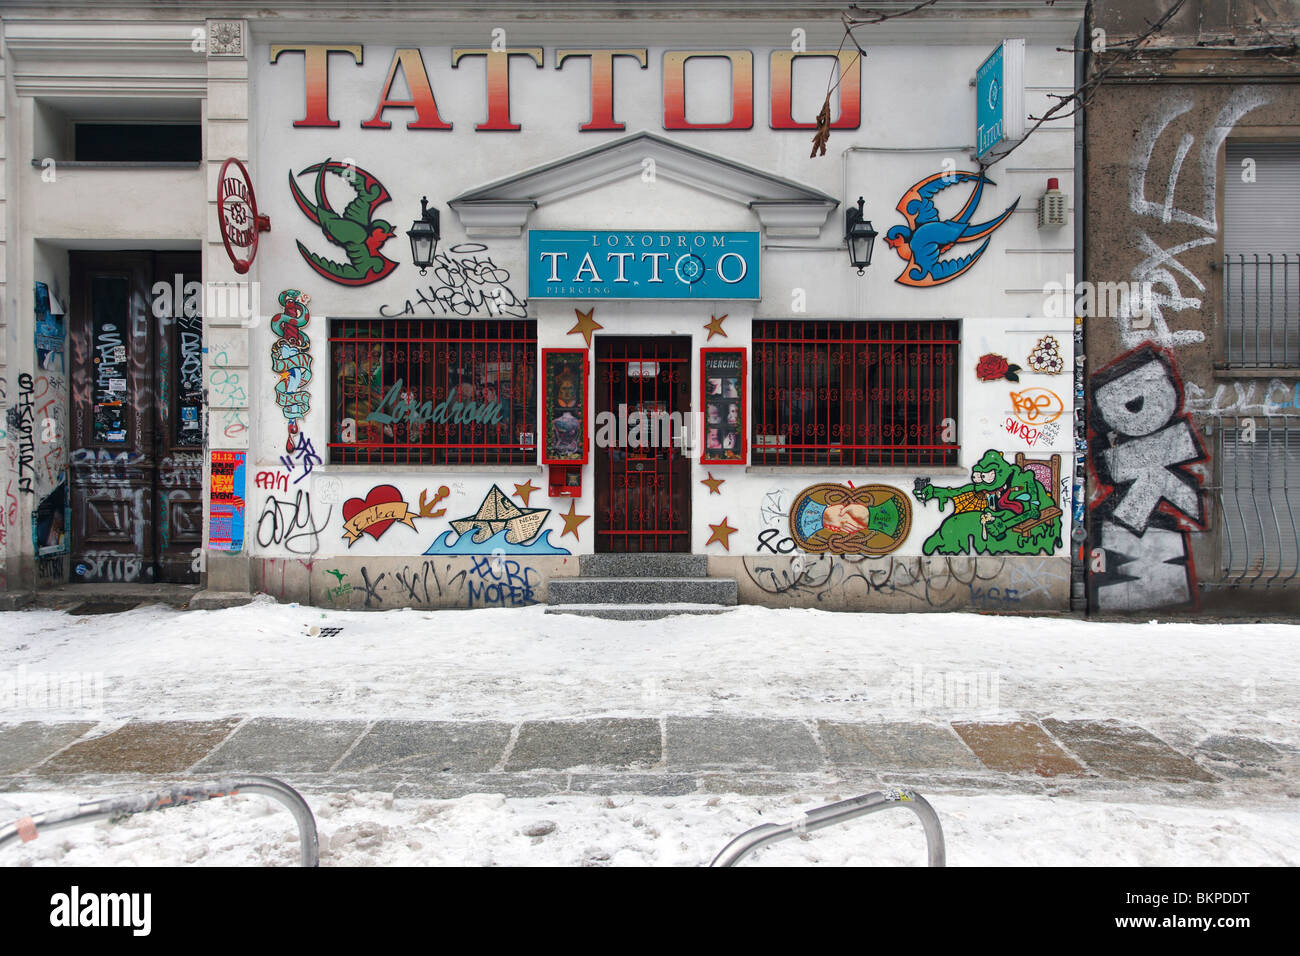 Tattoo Berlin Prenzlauer Berg Prenzlauer Berg Tattoo Shop In Berlin Stock Photo 29382356 Alamy